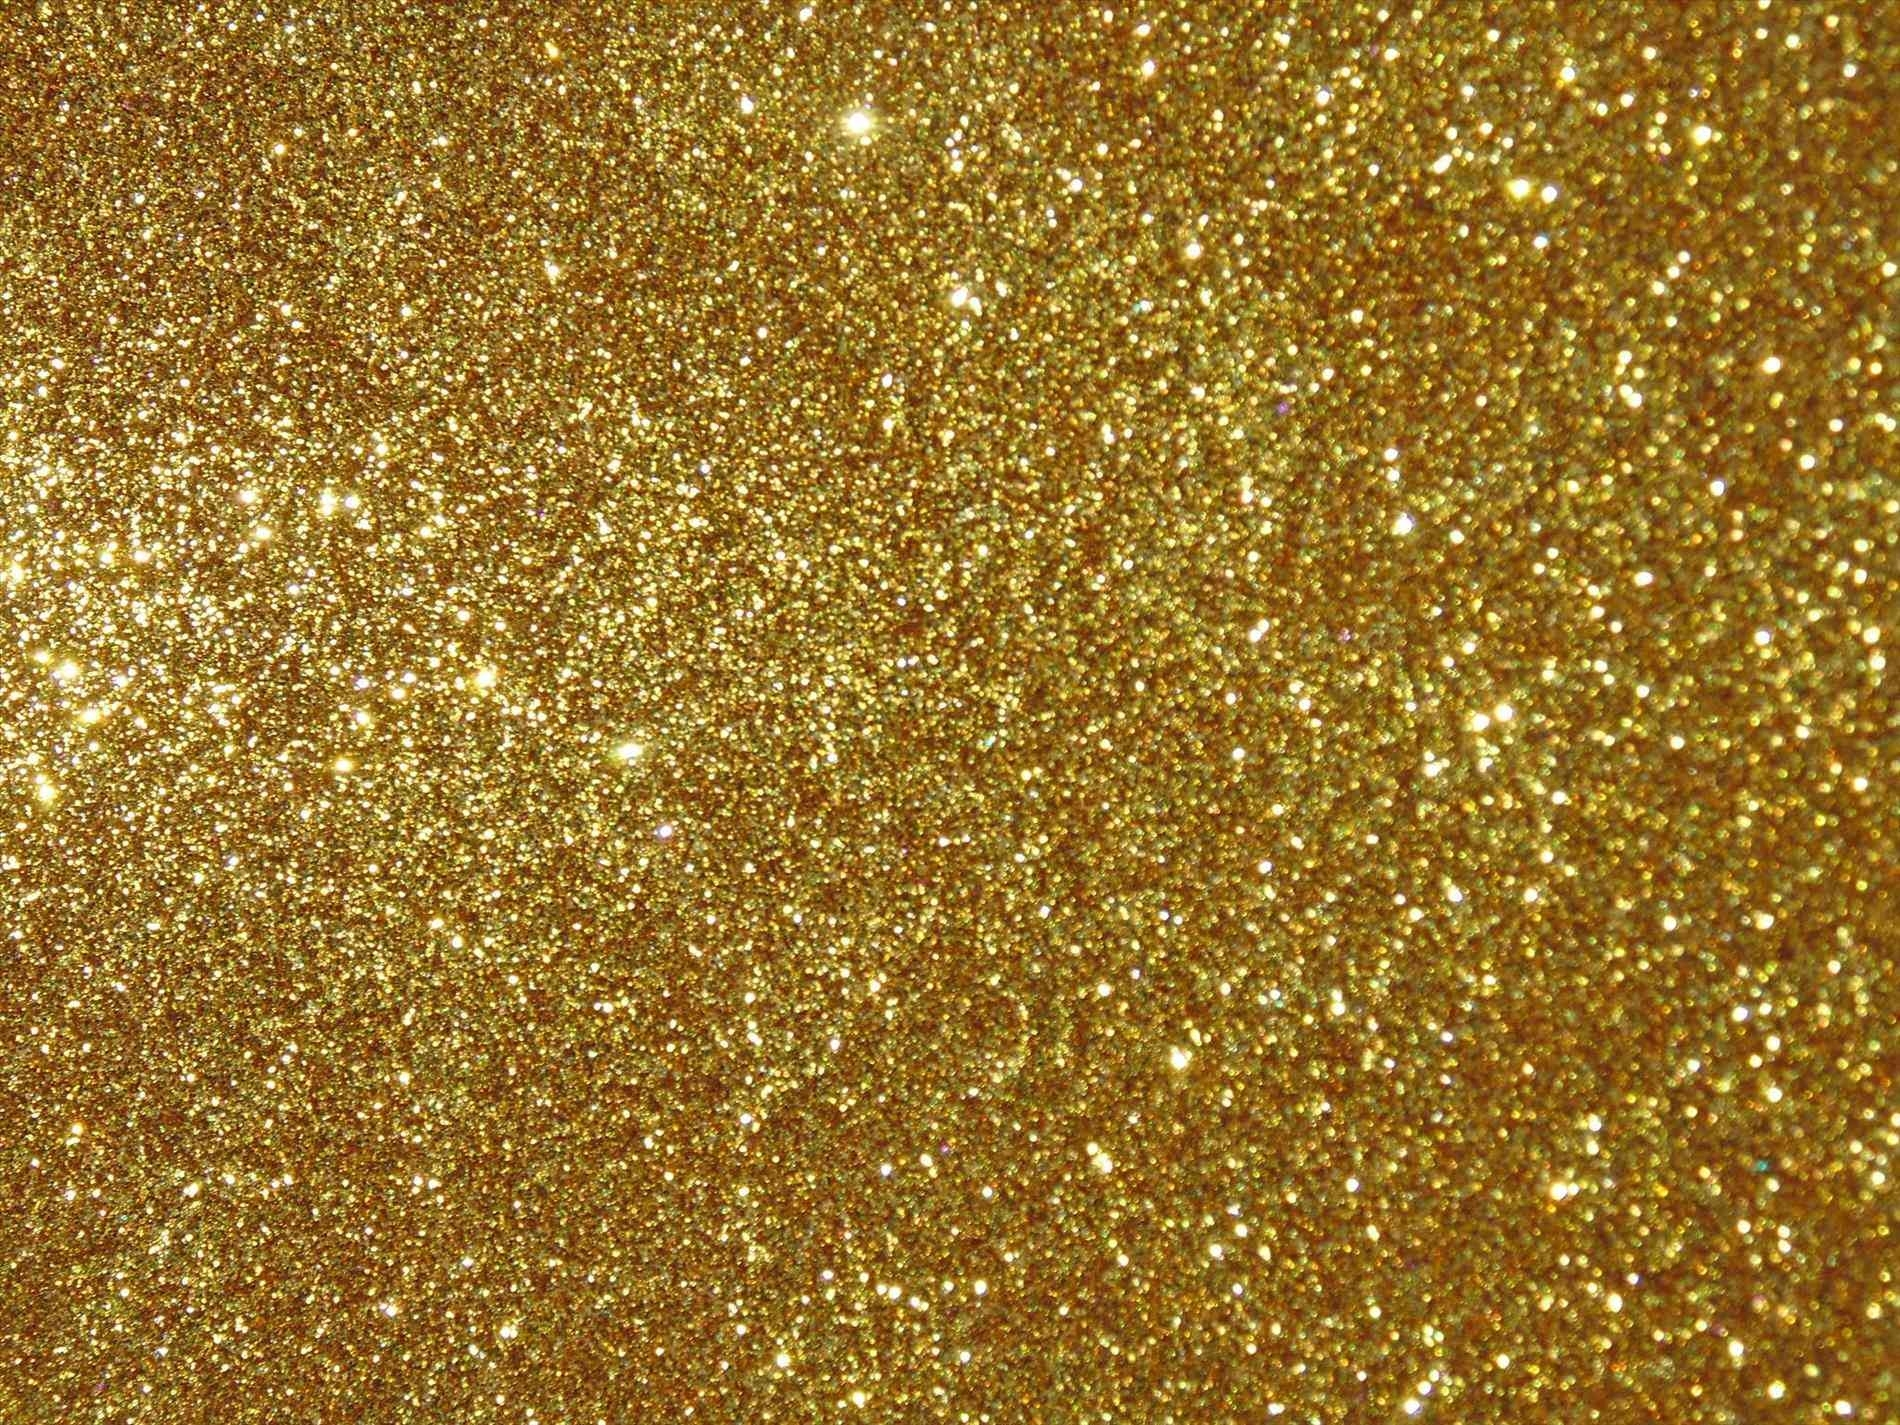 gold glitter background tumblr 8 | background check all